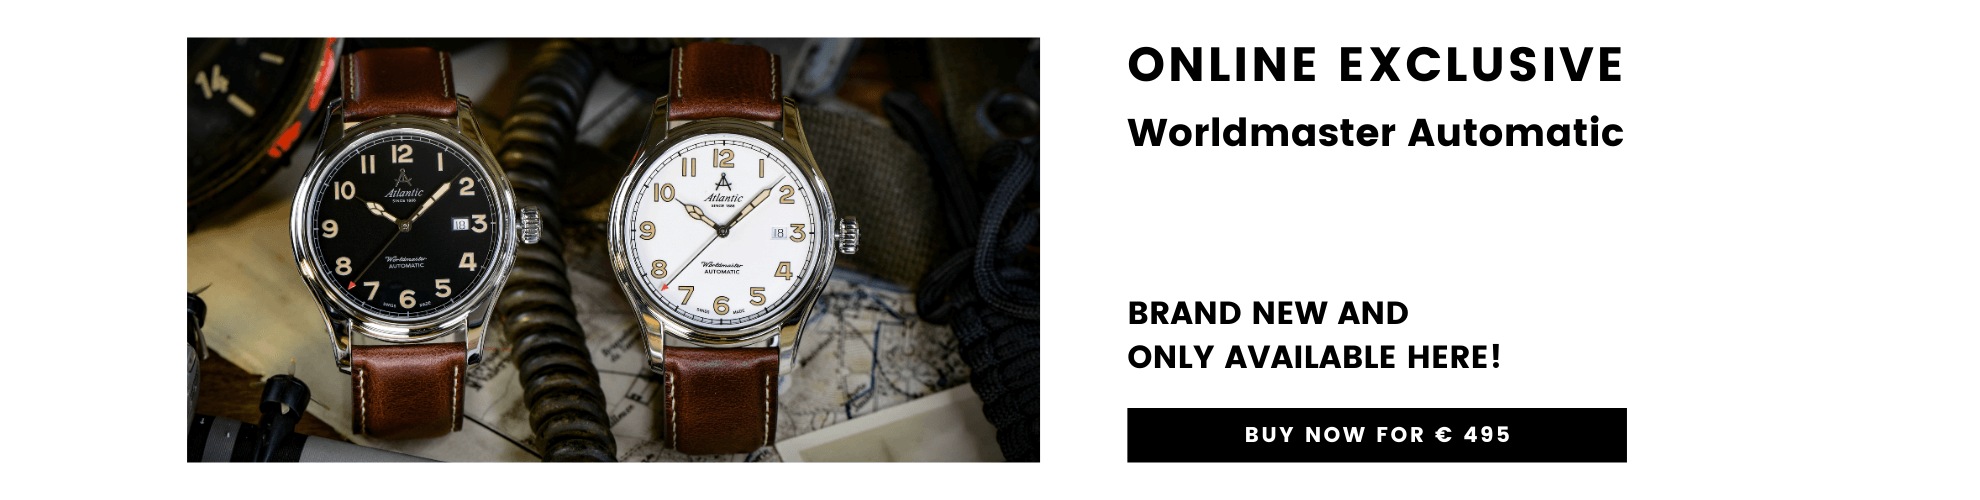 Atlantic Worldmaster Automatic Online Exclusive